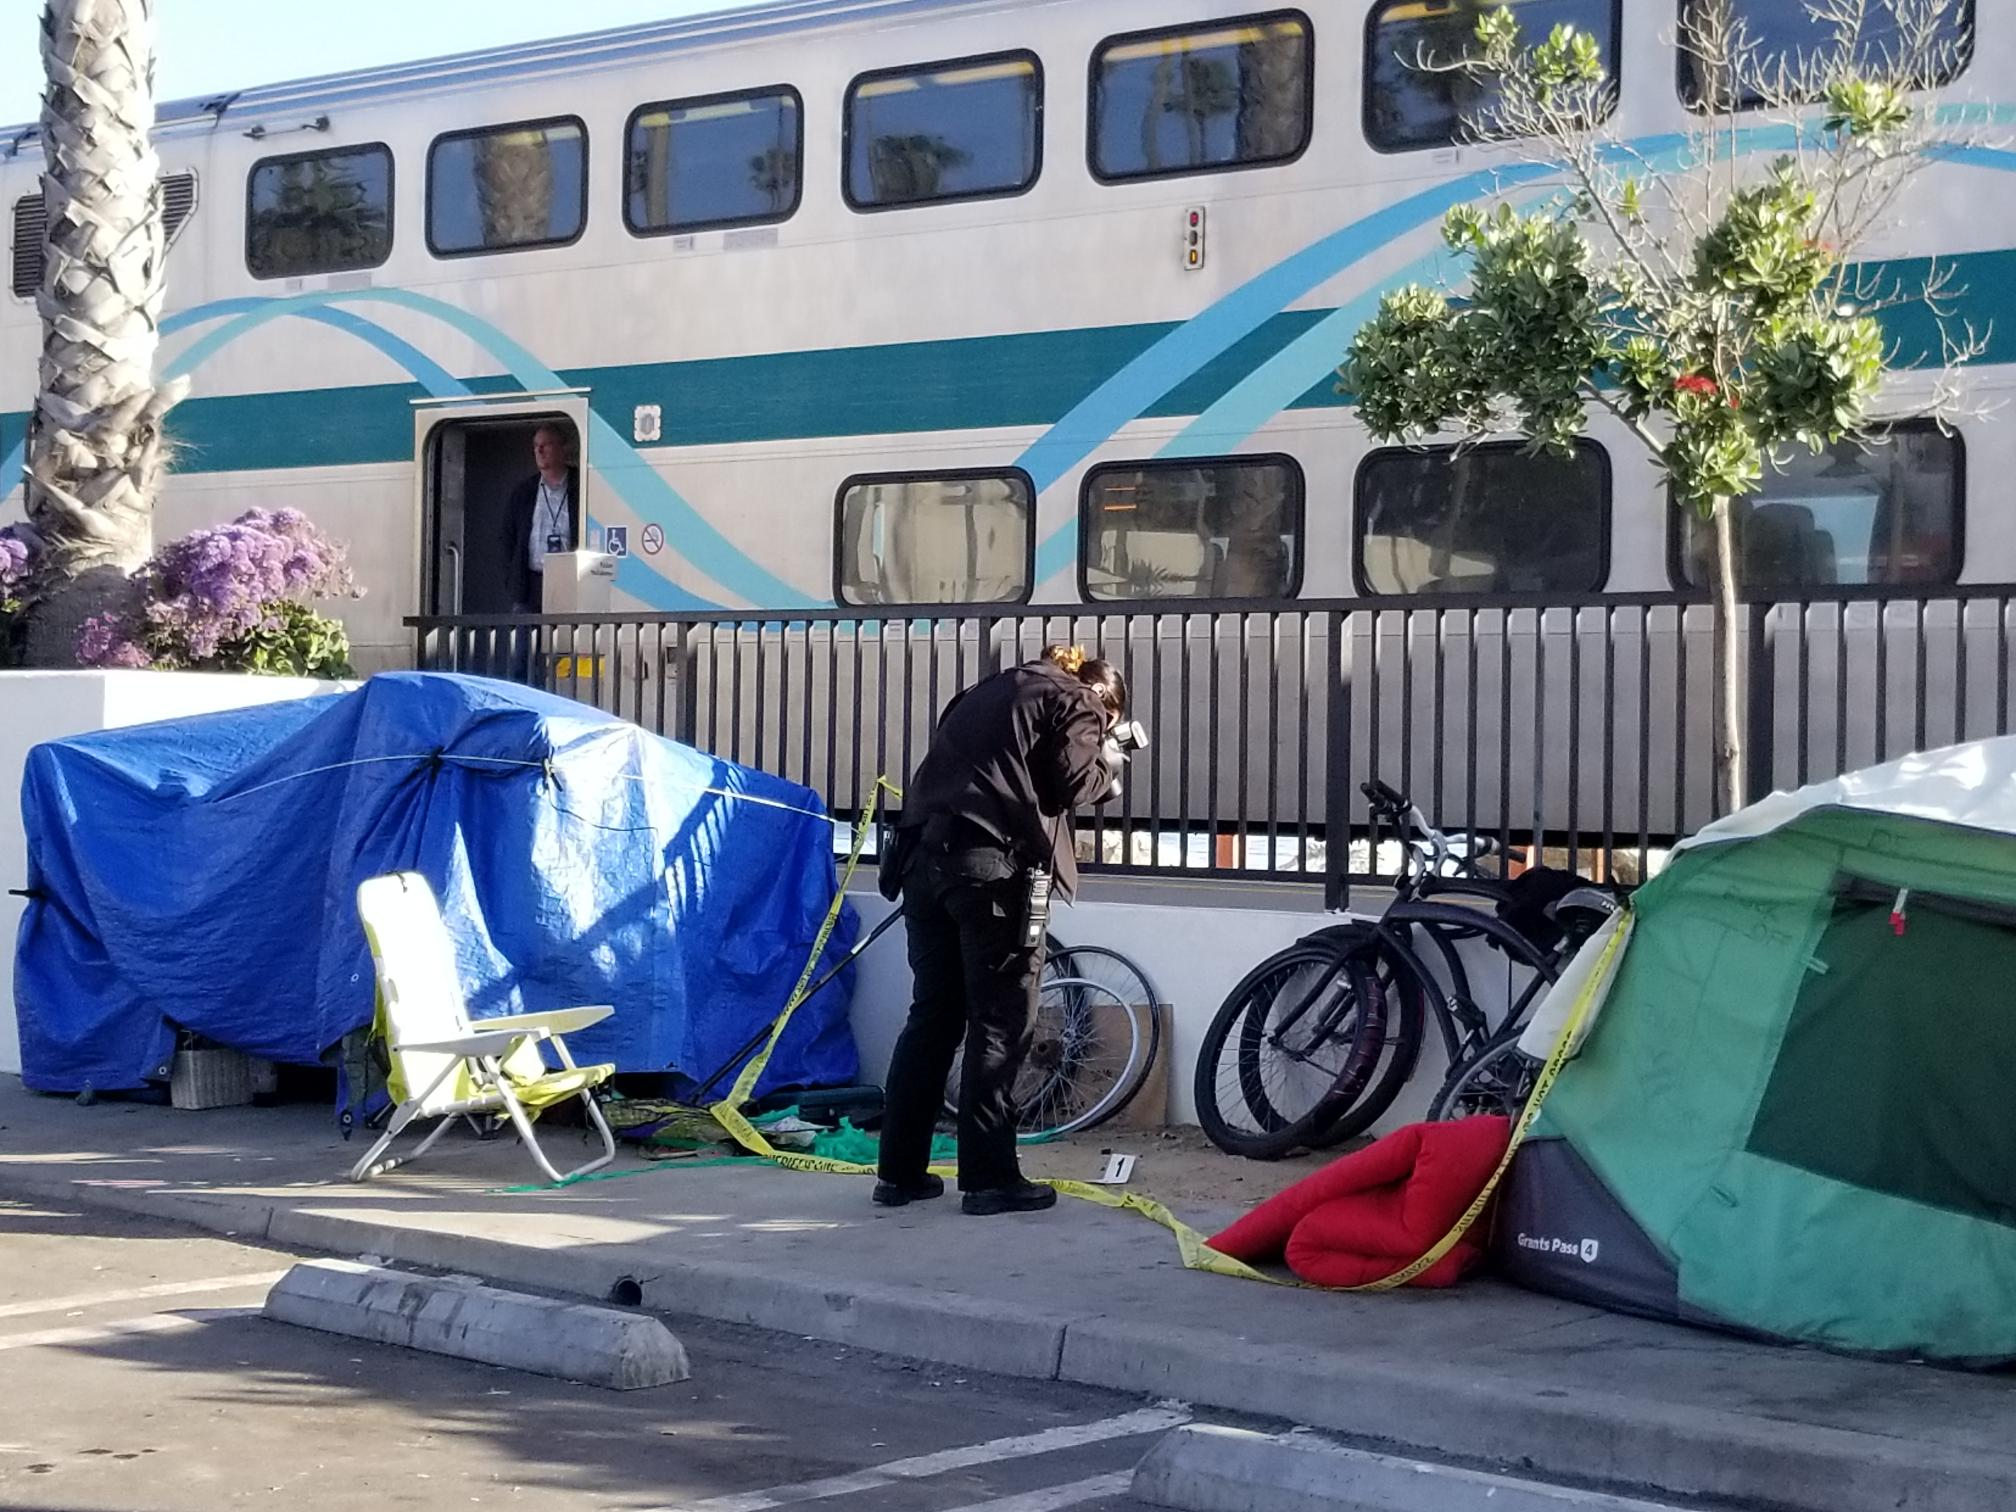 An OCSD Crime Scene Investigator photographs the scene of an alleged crime where a fight broke out between two homeless men. Photo: Cari Hachmann